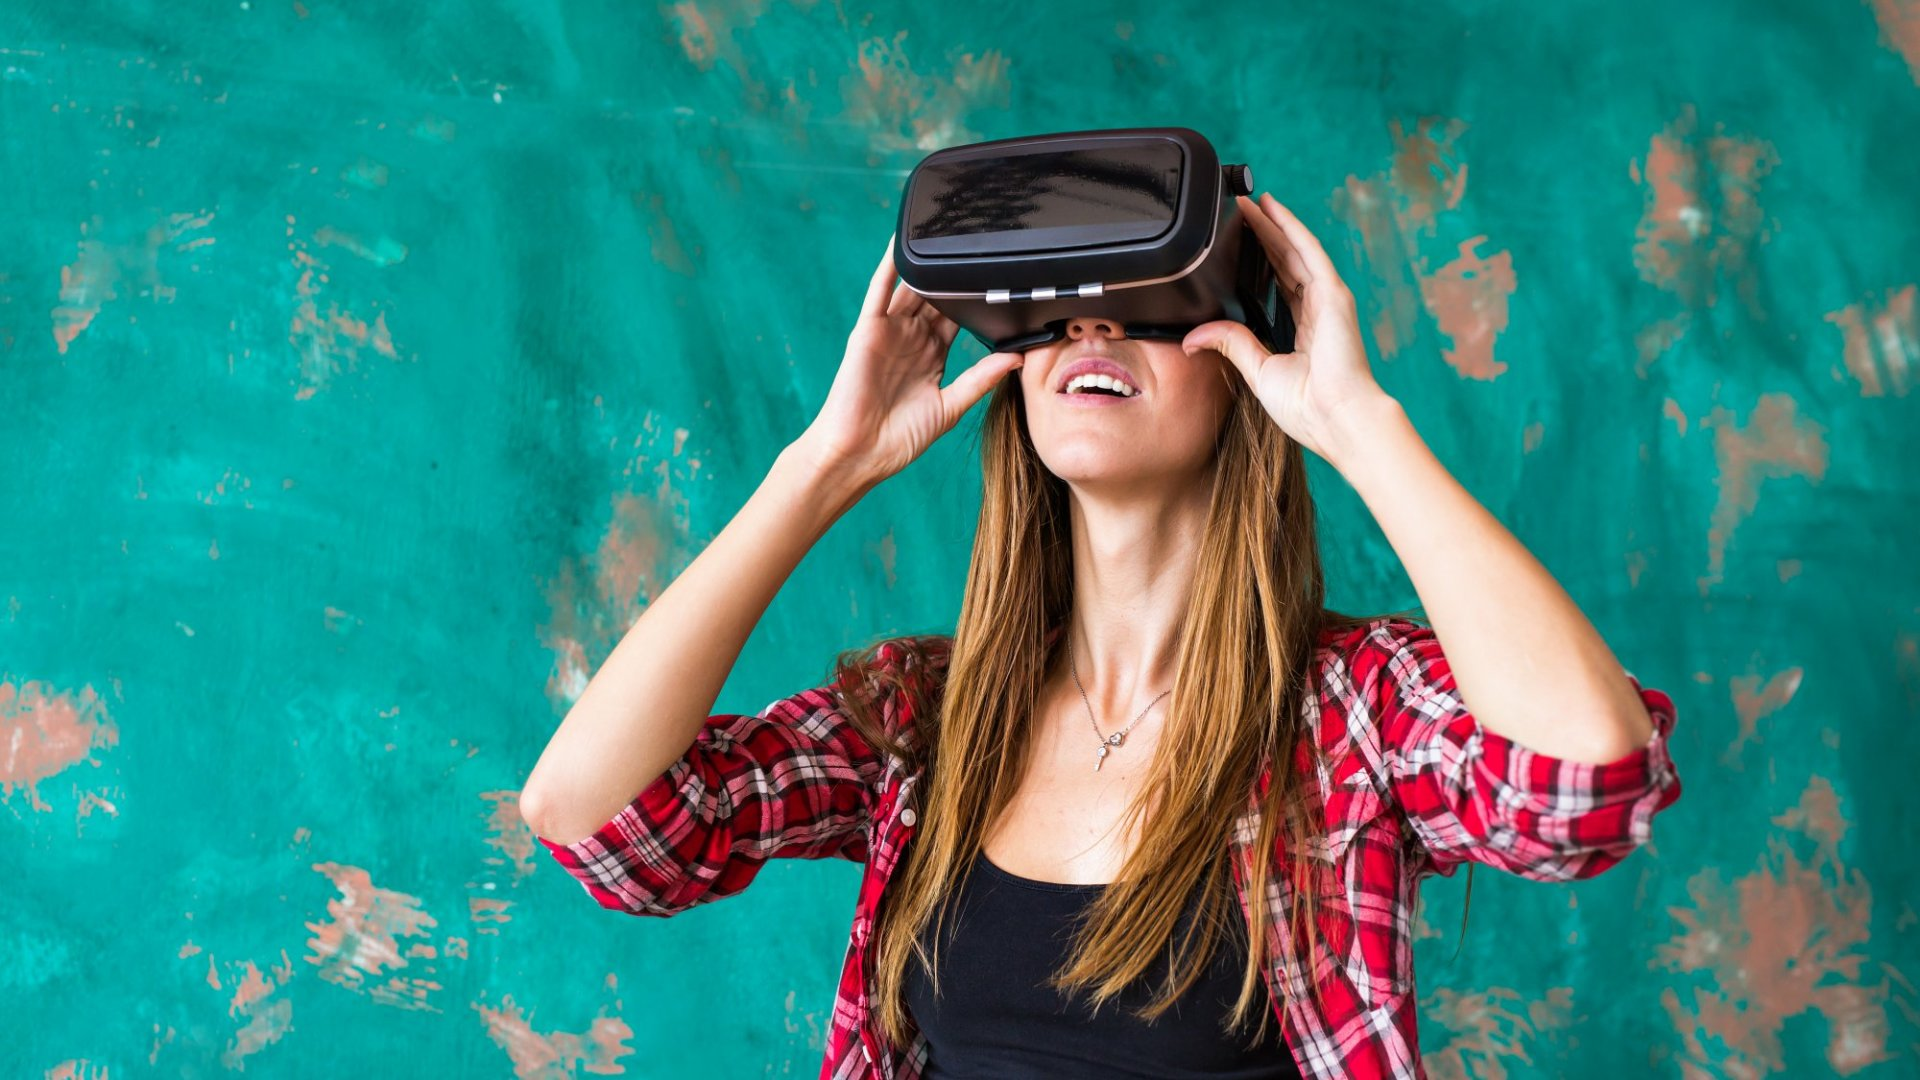 VR offers a new way to connect to young consumers